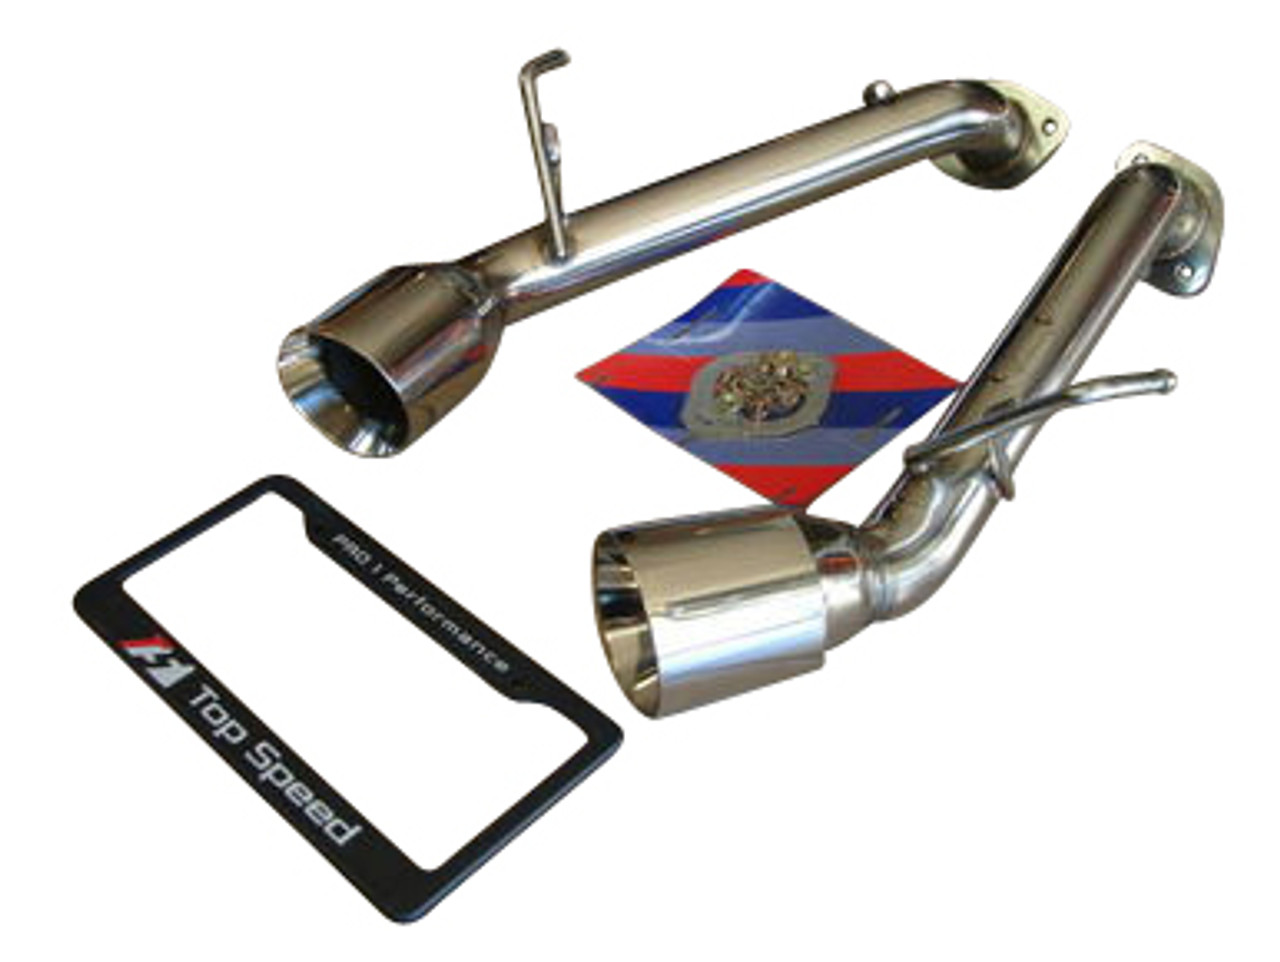 Infiniti G37 Coupe Top Speed Pro1 Axle Back Exhaust System